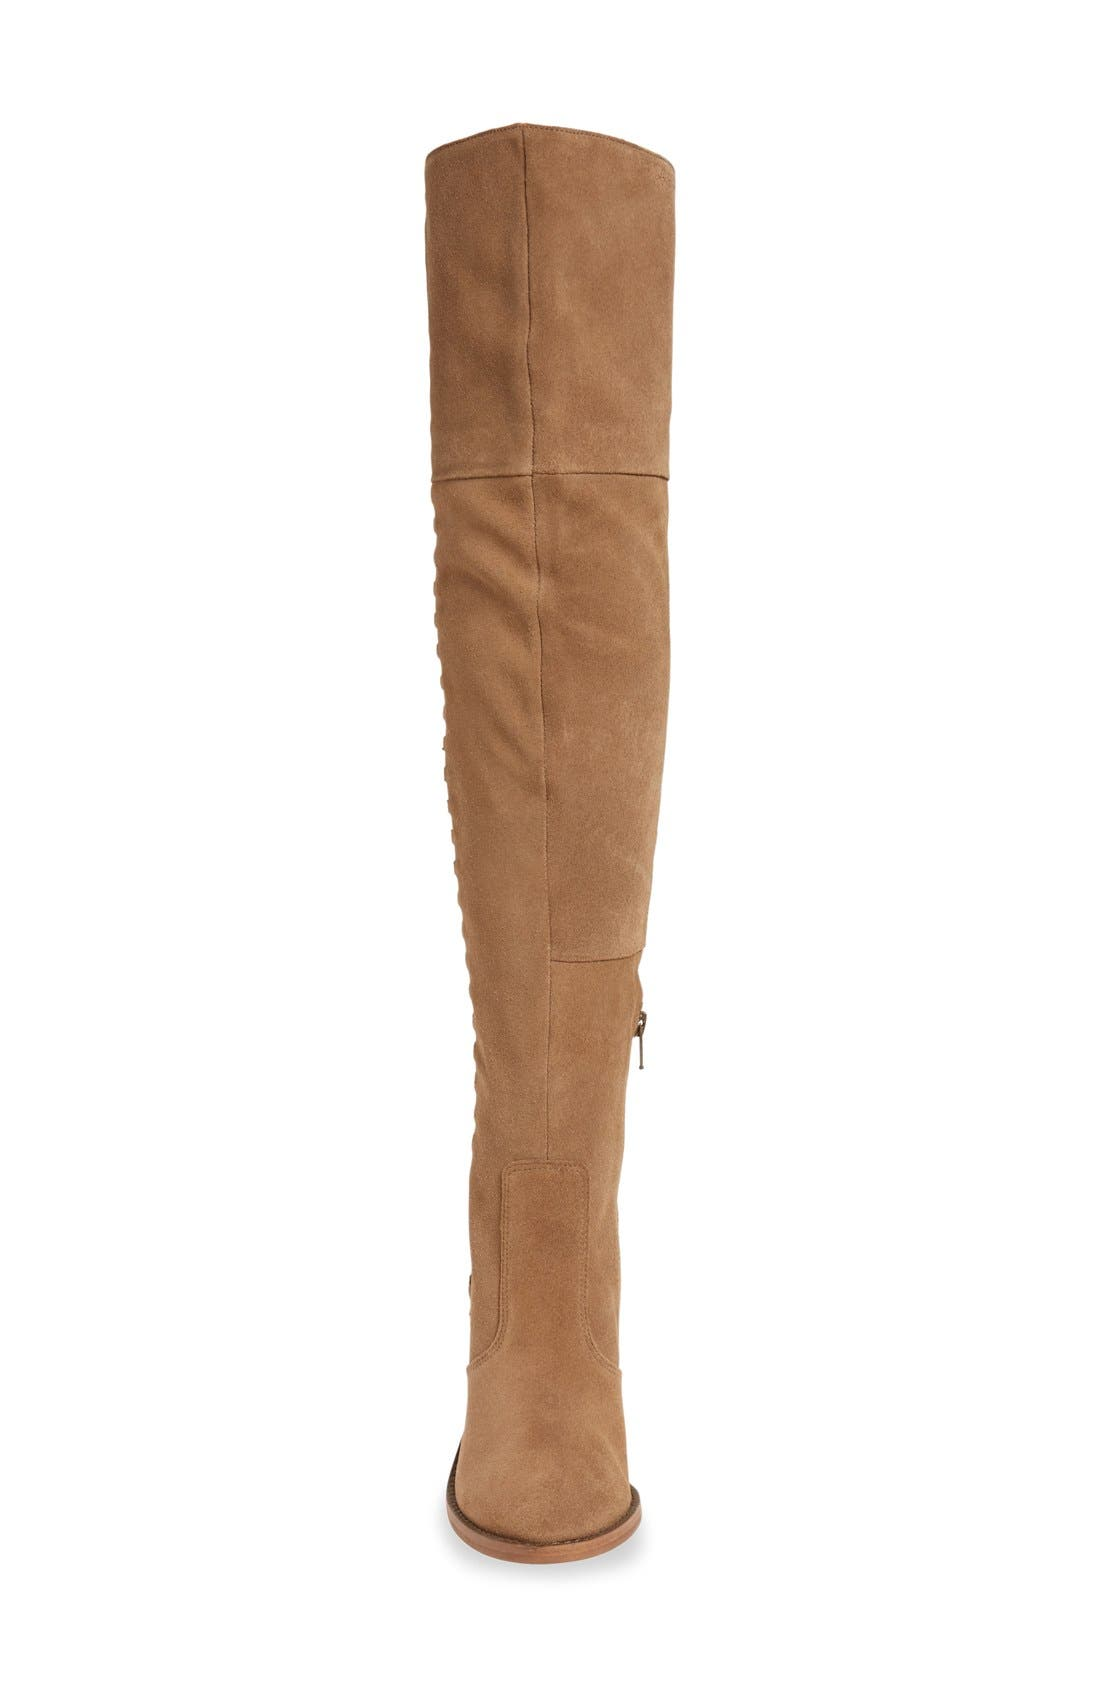 Alternate Image 3  - Vince Camuto 'Morra' Over the Knee Boot (Women)